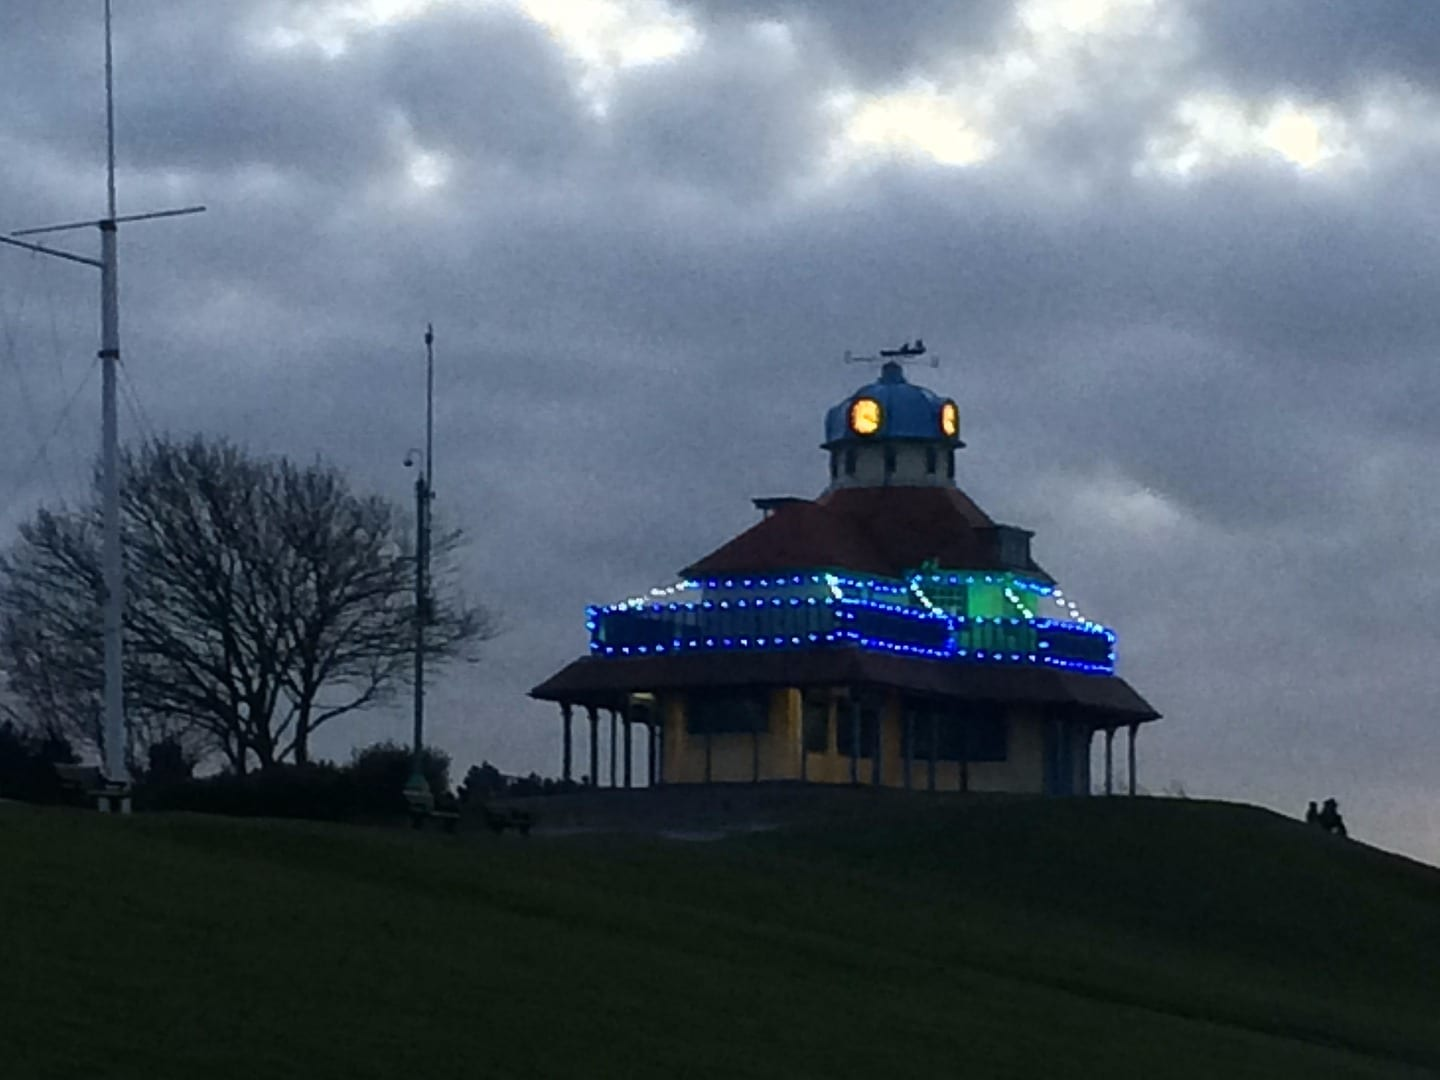 Fleetwood Festive Lights